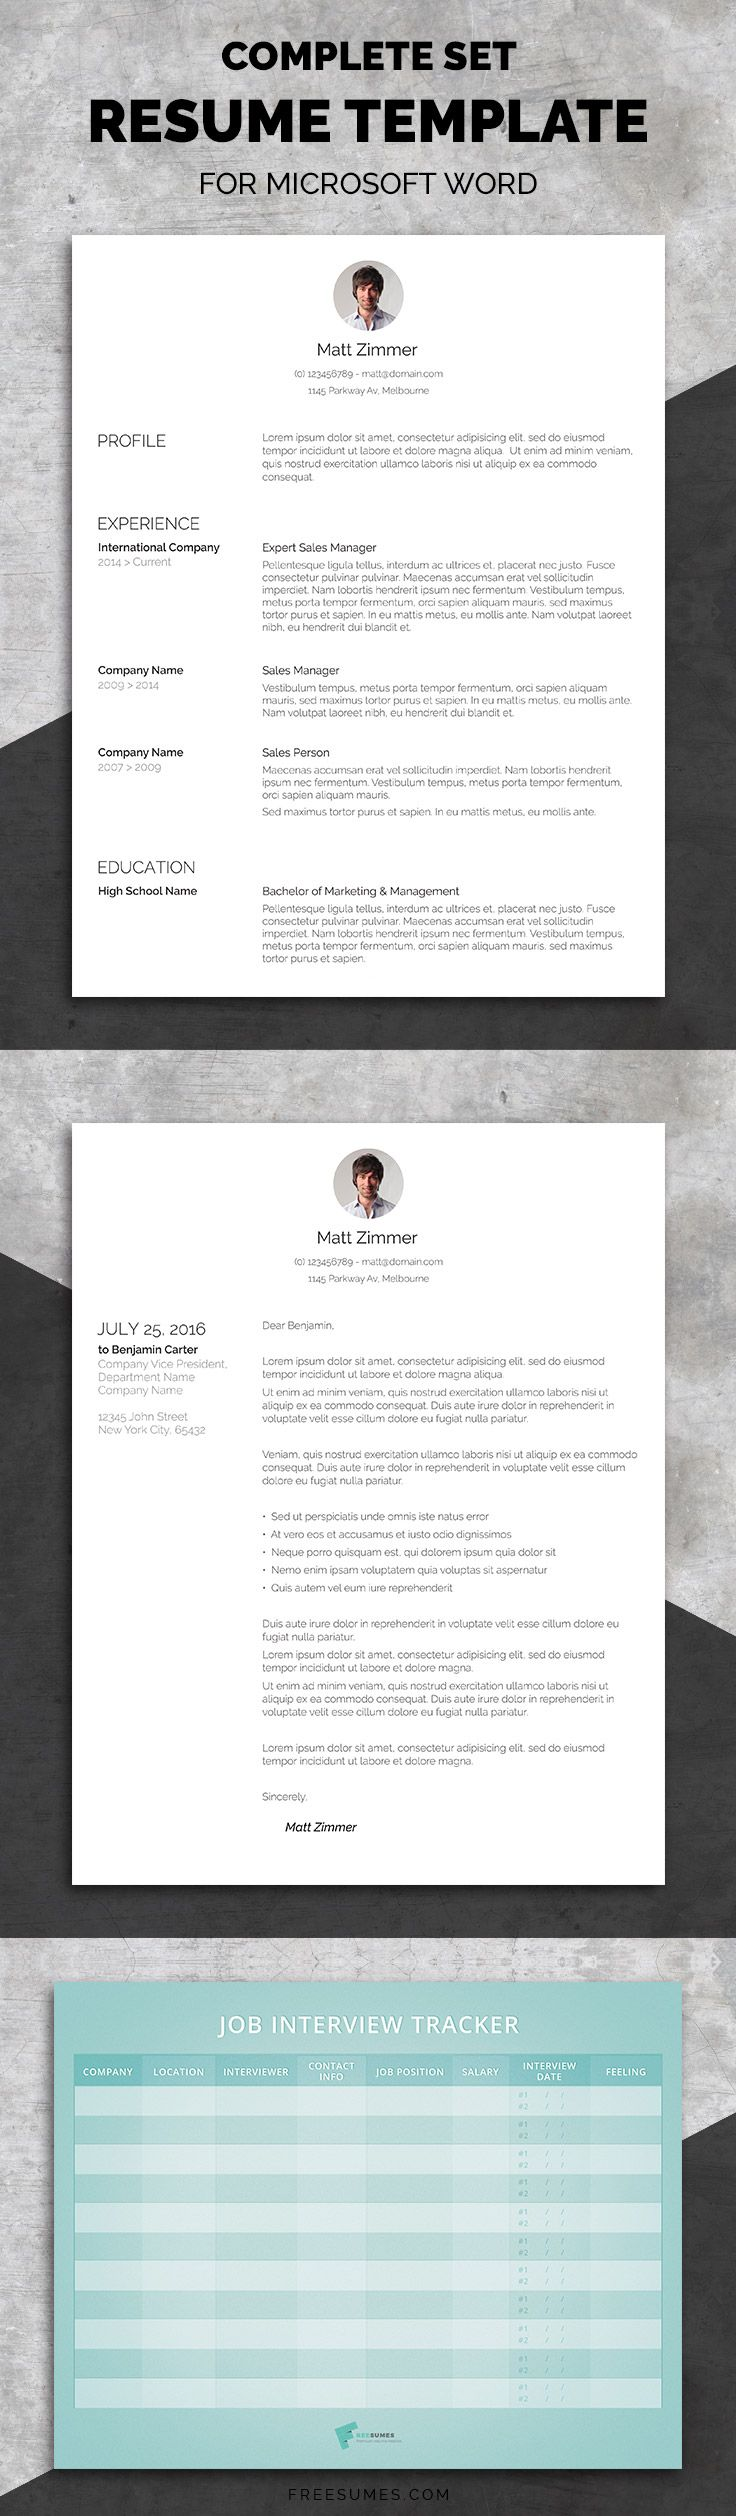 Professional Resume Template Set Professional Resume Template